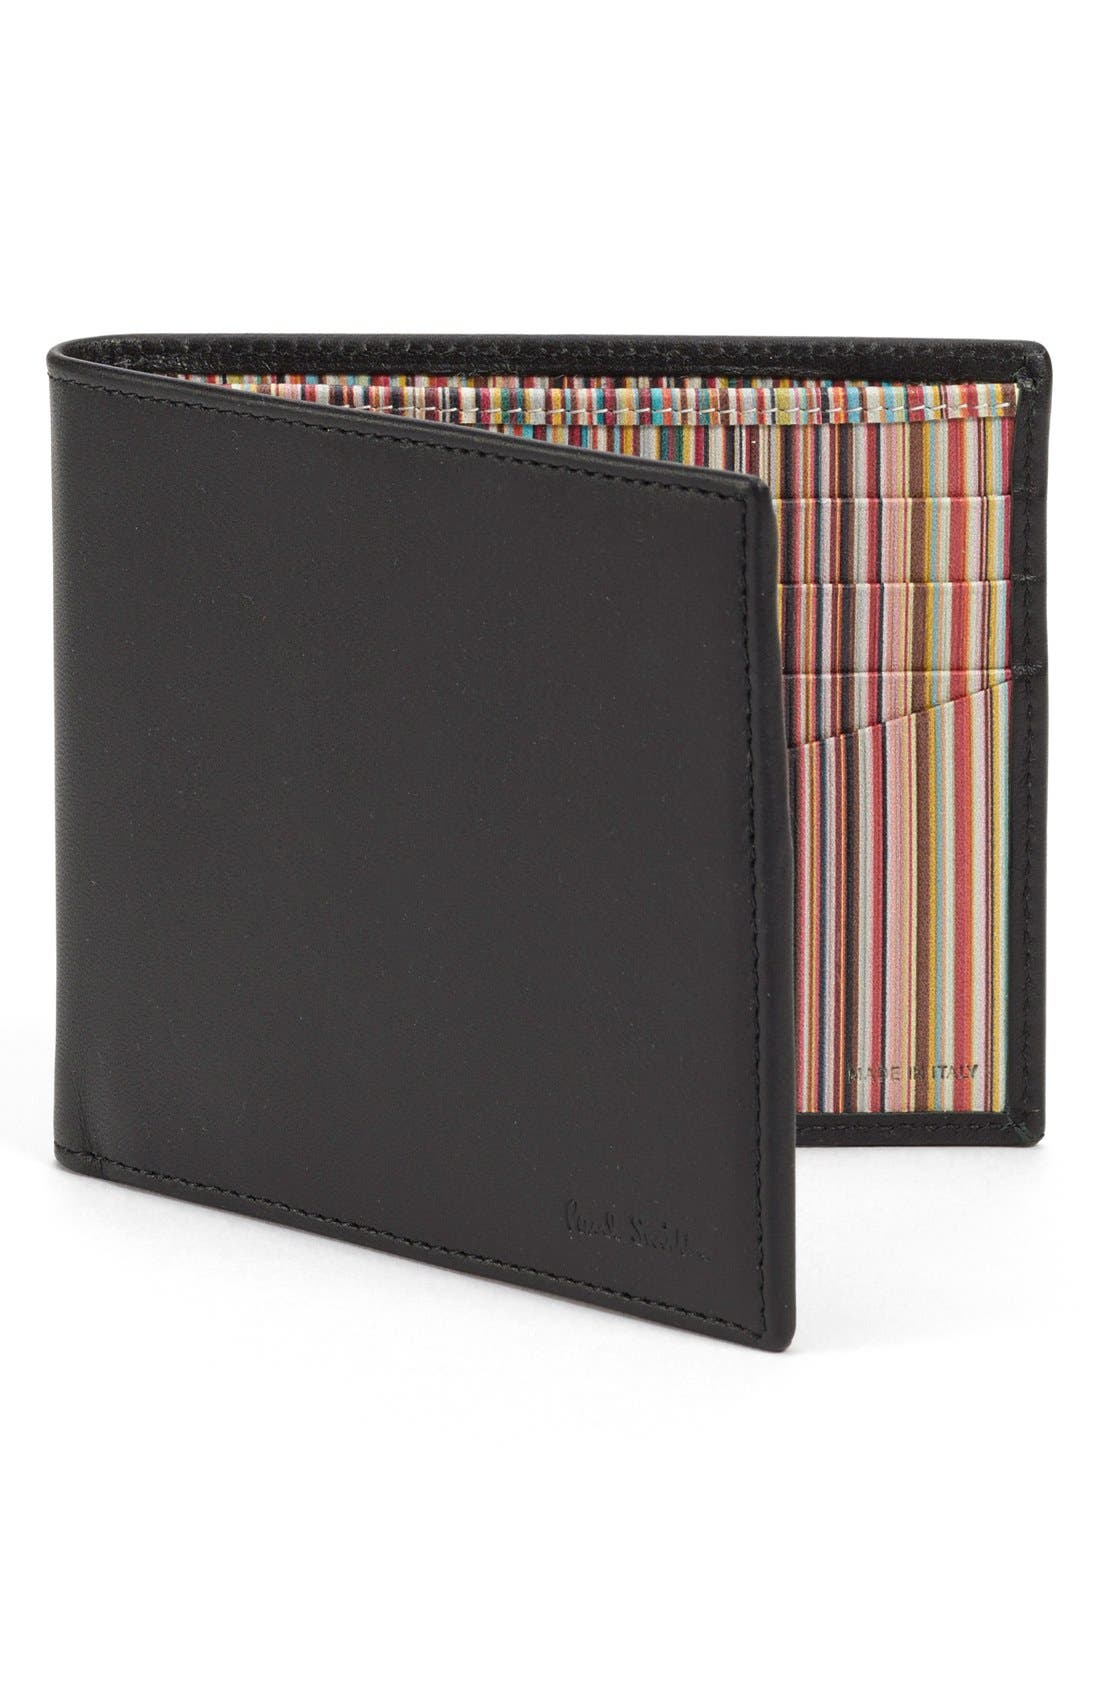 Interior Stripe Leather Billfold,                         Main,                         color, 001